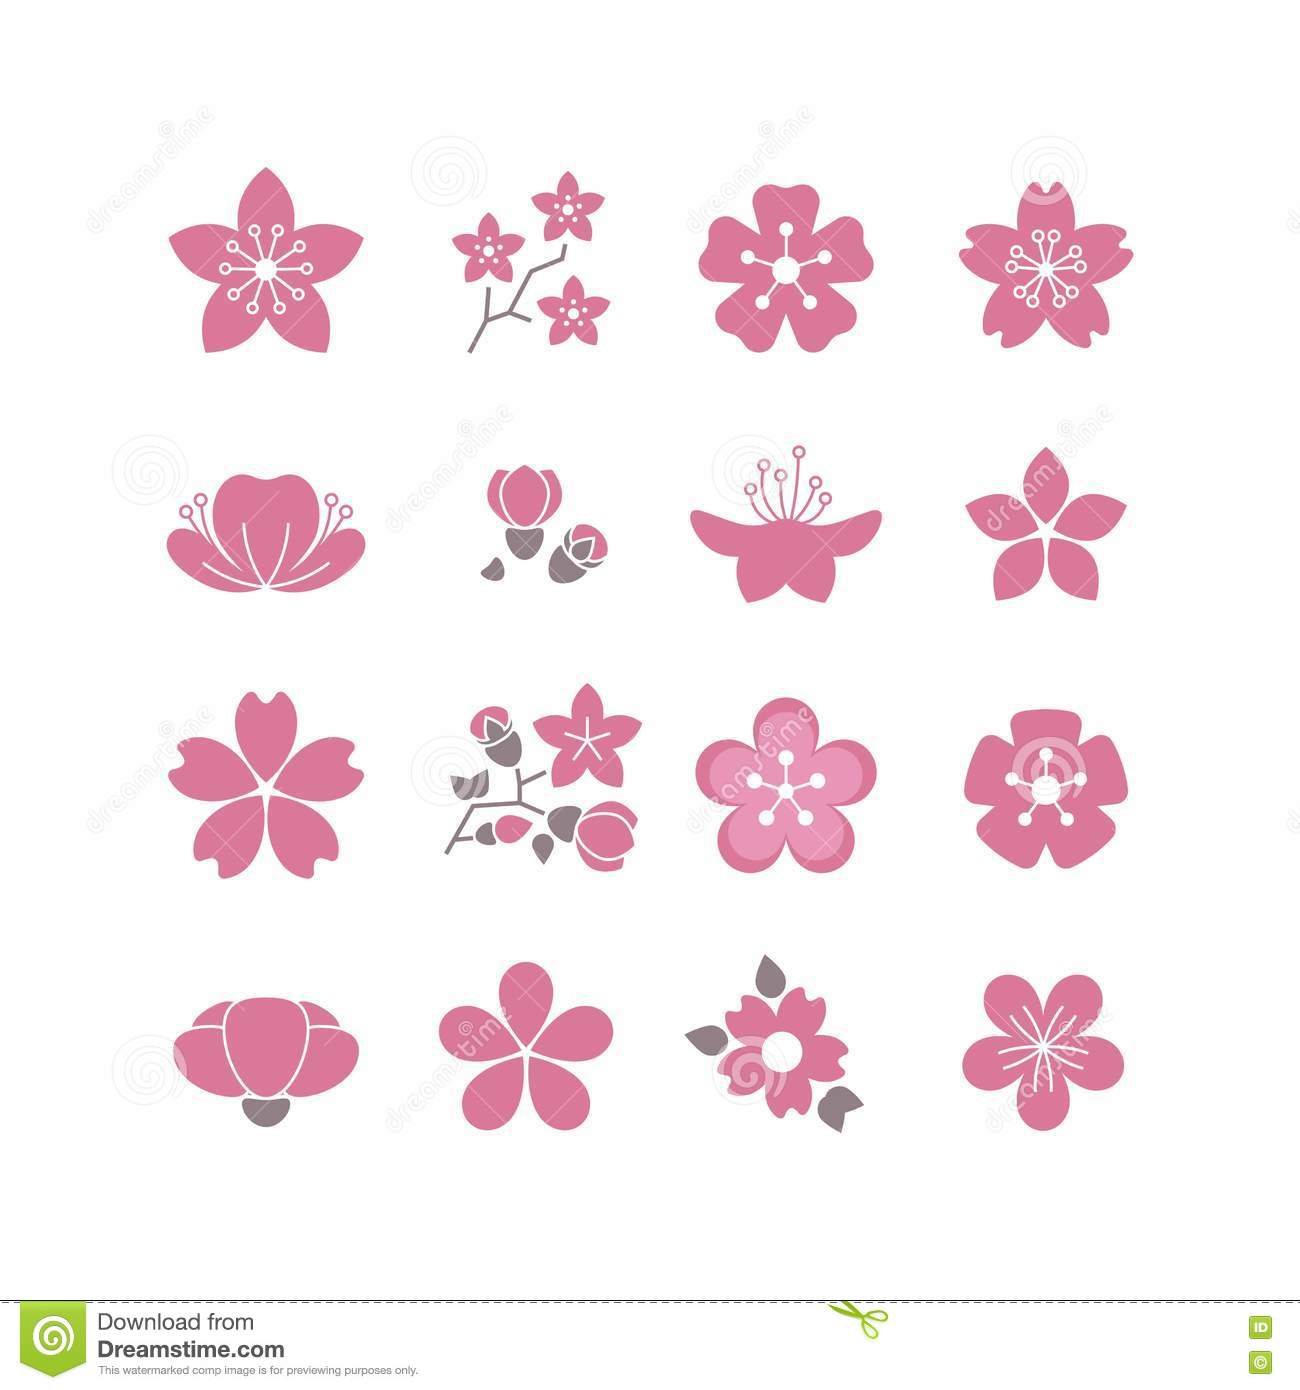 Cherry pink flower spring sakura blossom vector icon set stock bloom blossom branch cherry flower icon illustration pink dhlflorist Images